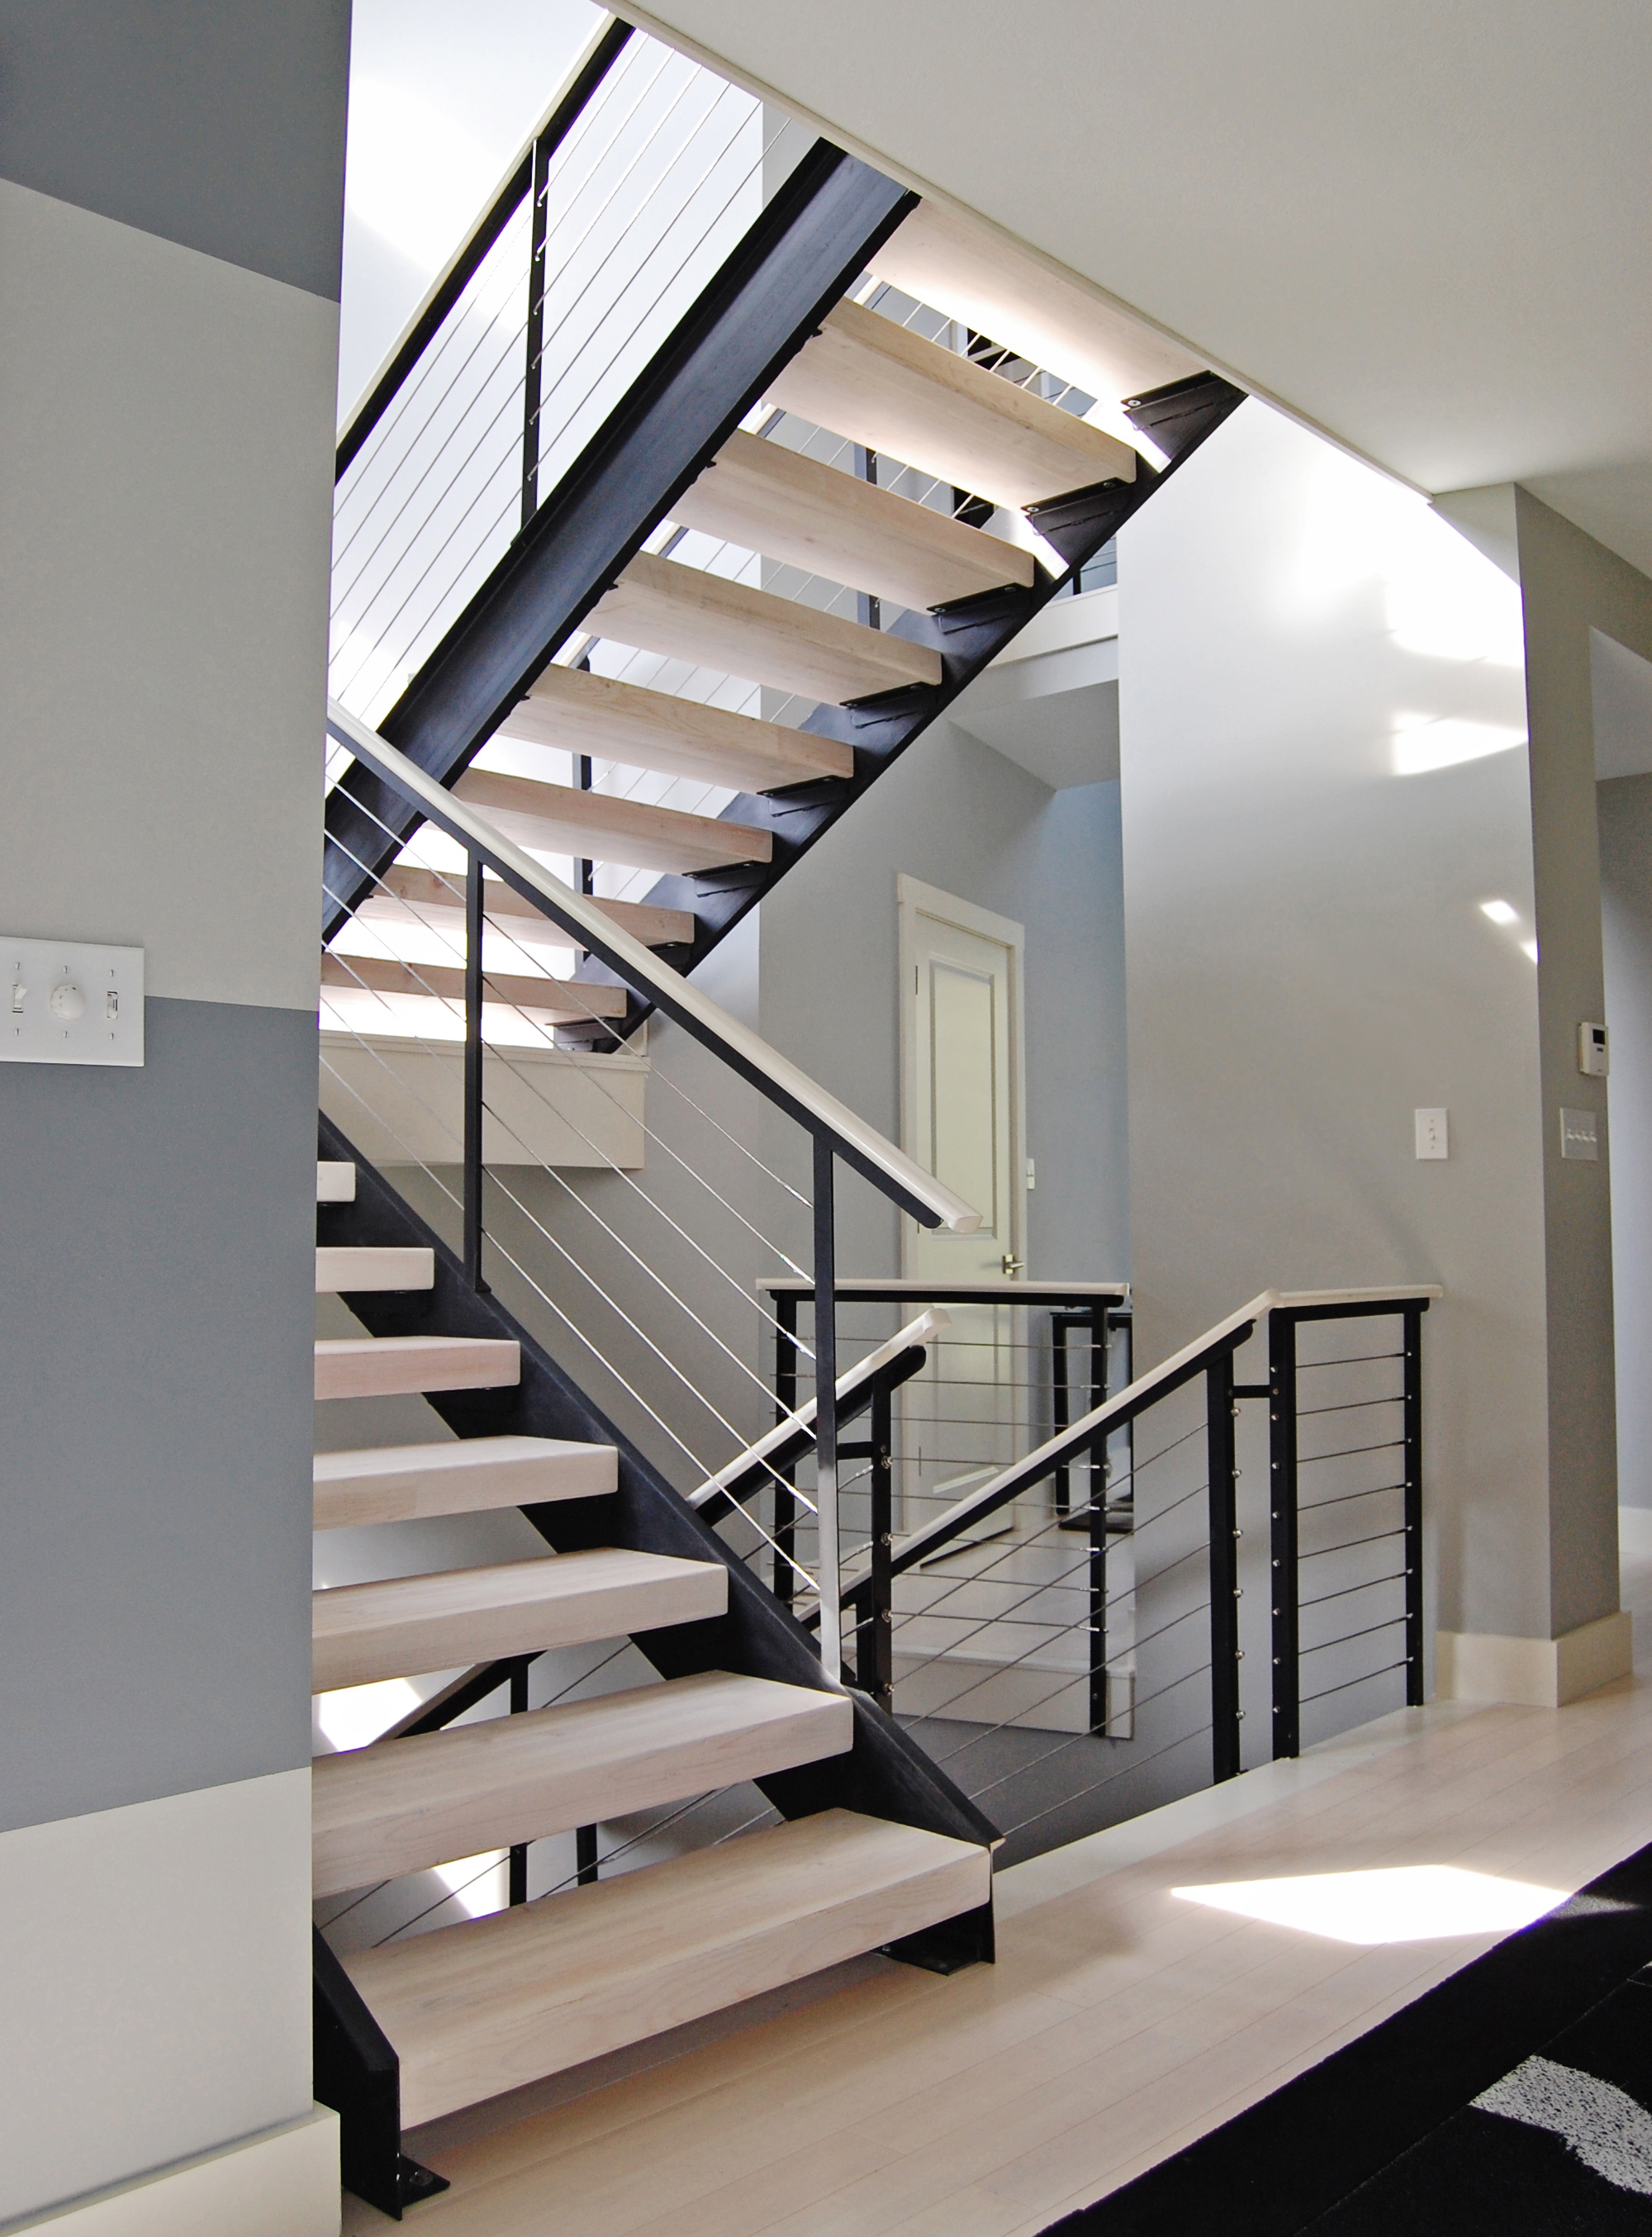 Incroyable Stair Railing Ideas